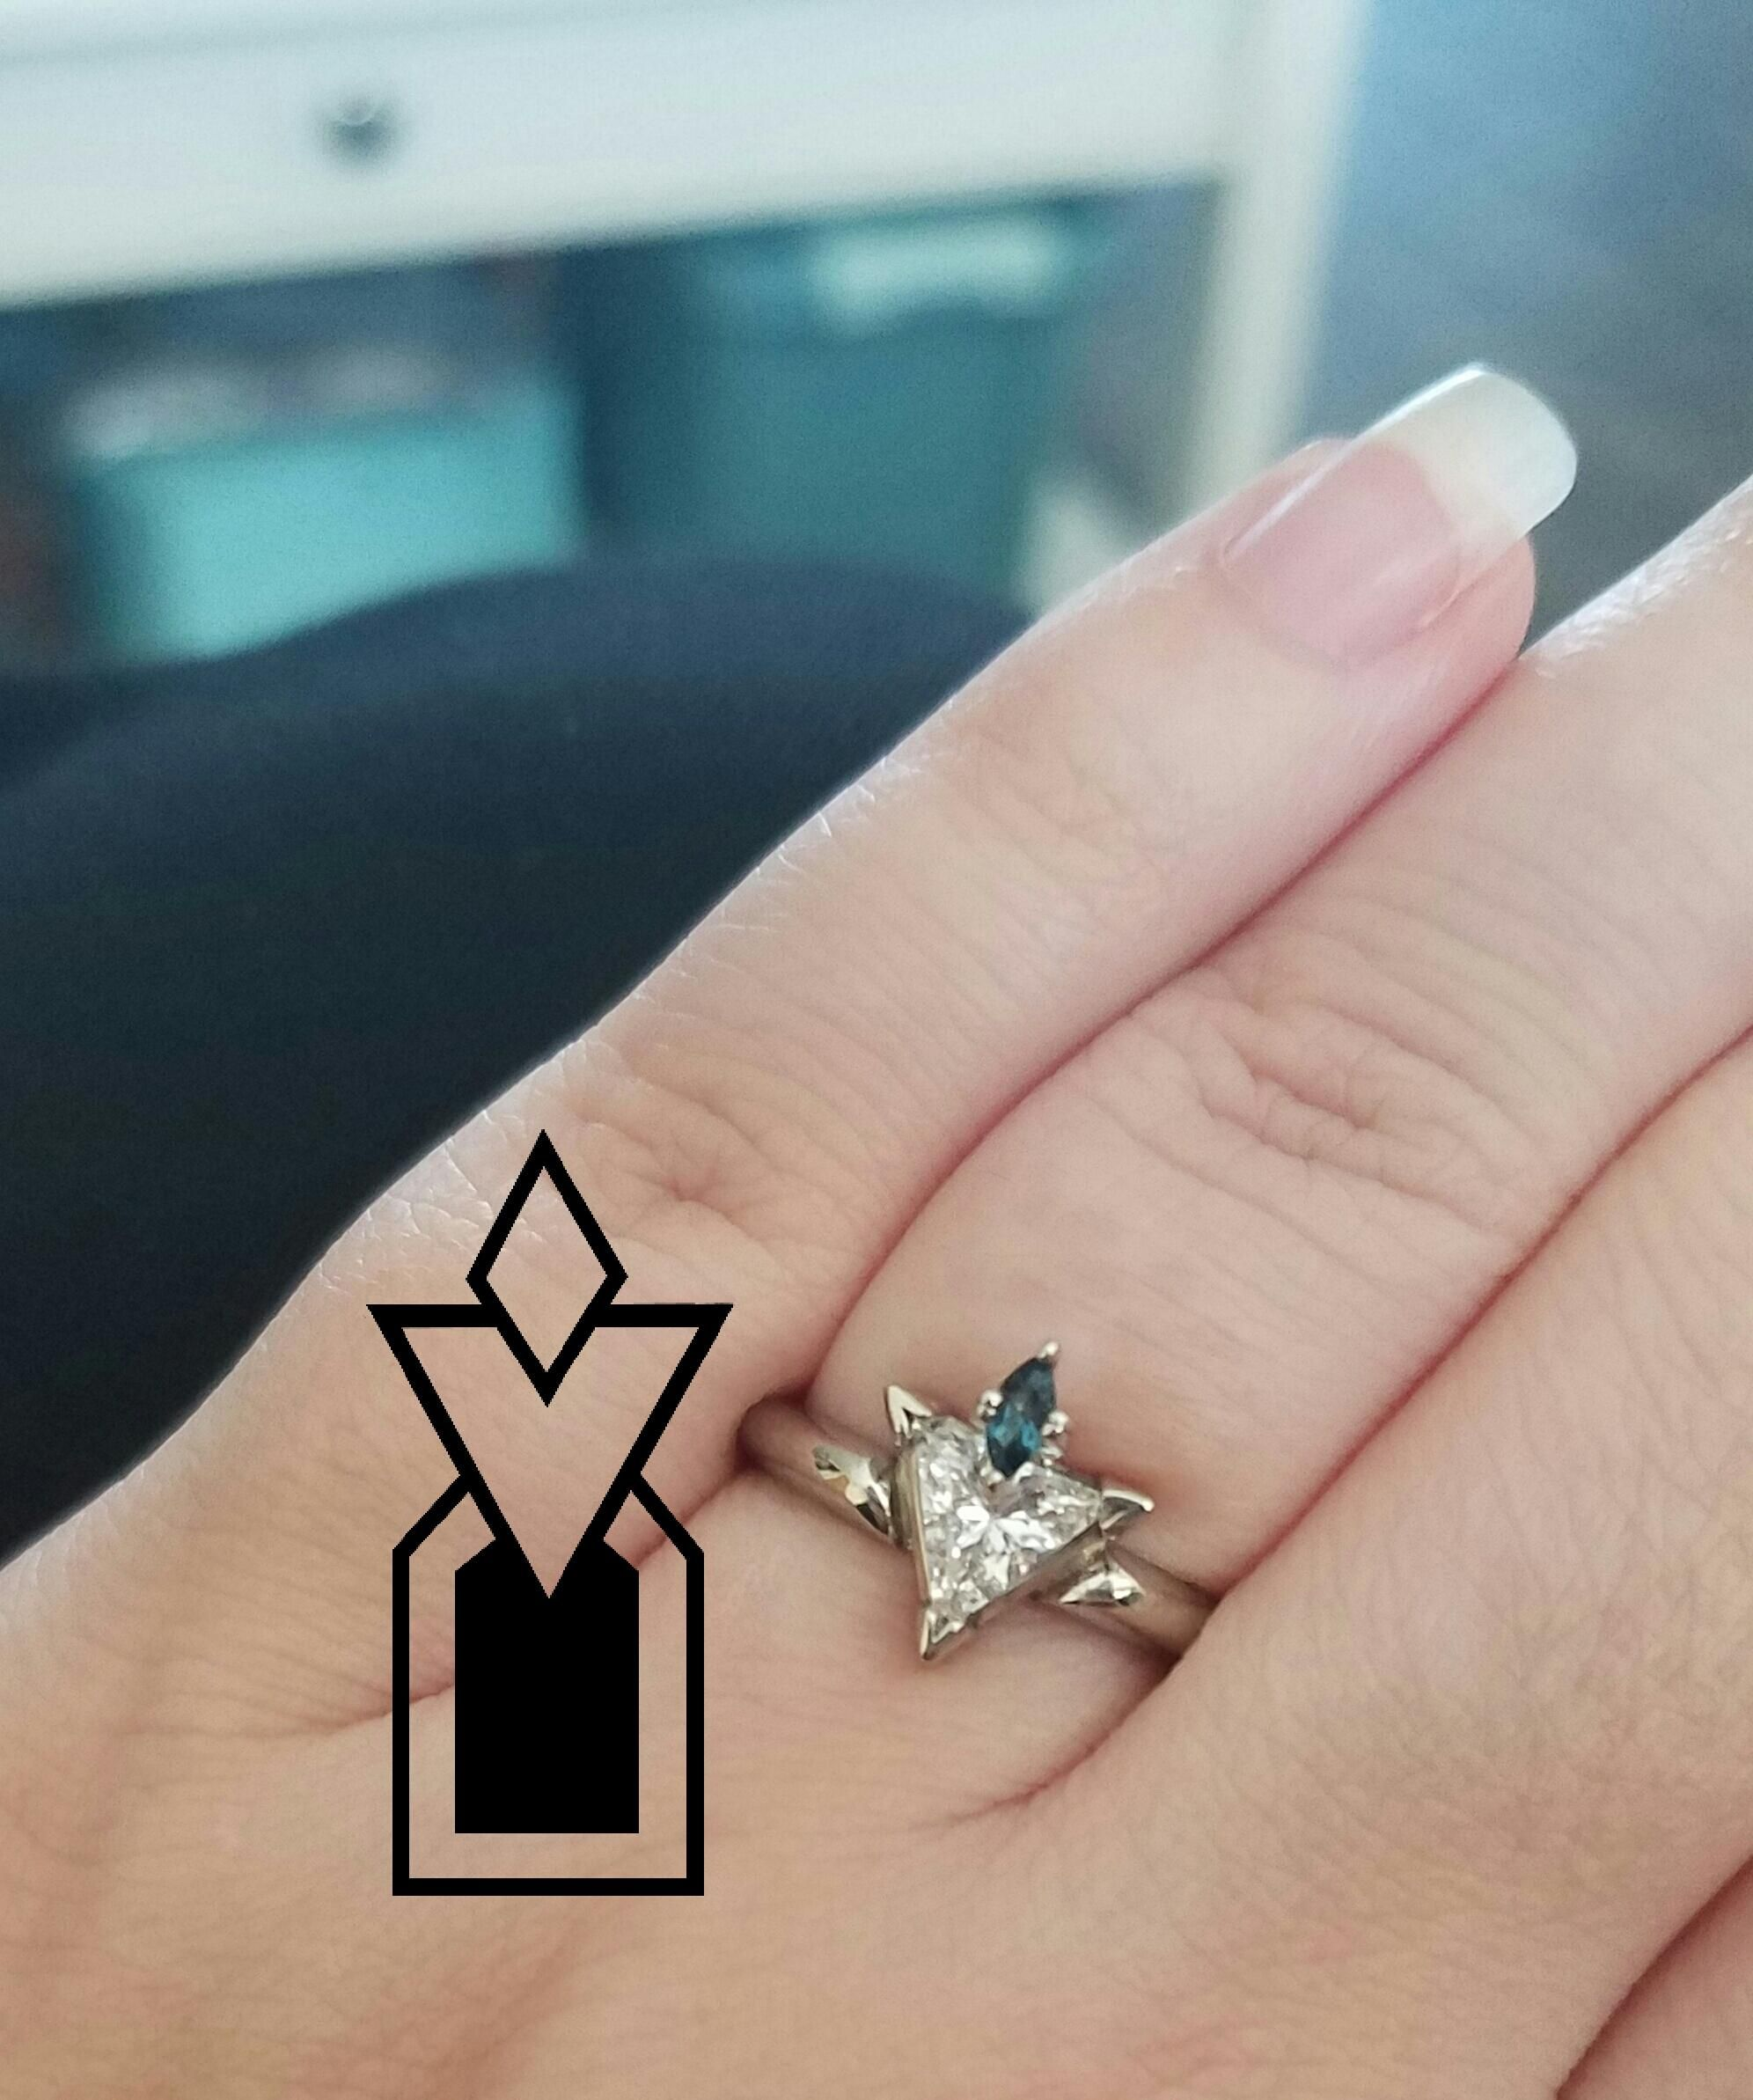 My Husband Designed Me A Skyrim Ring For My Birthday! #games #Skyrim  #elderscrolls #BE3 #gaming #videogames #Concours #NGC